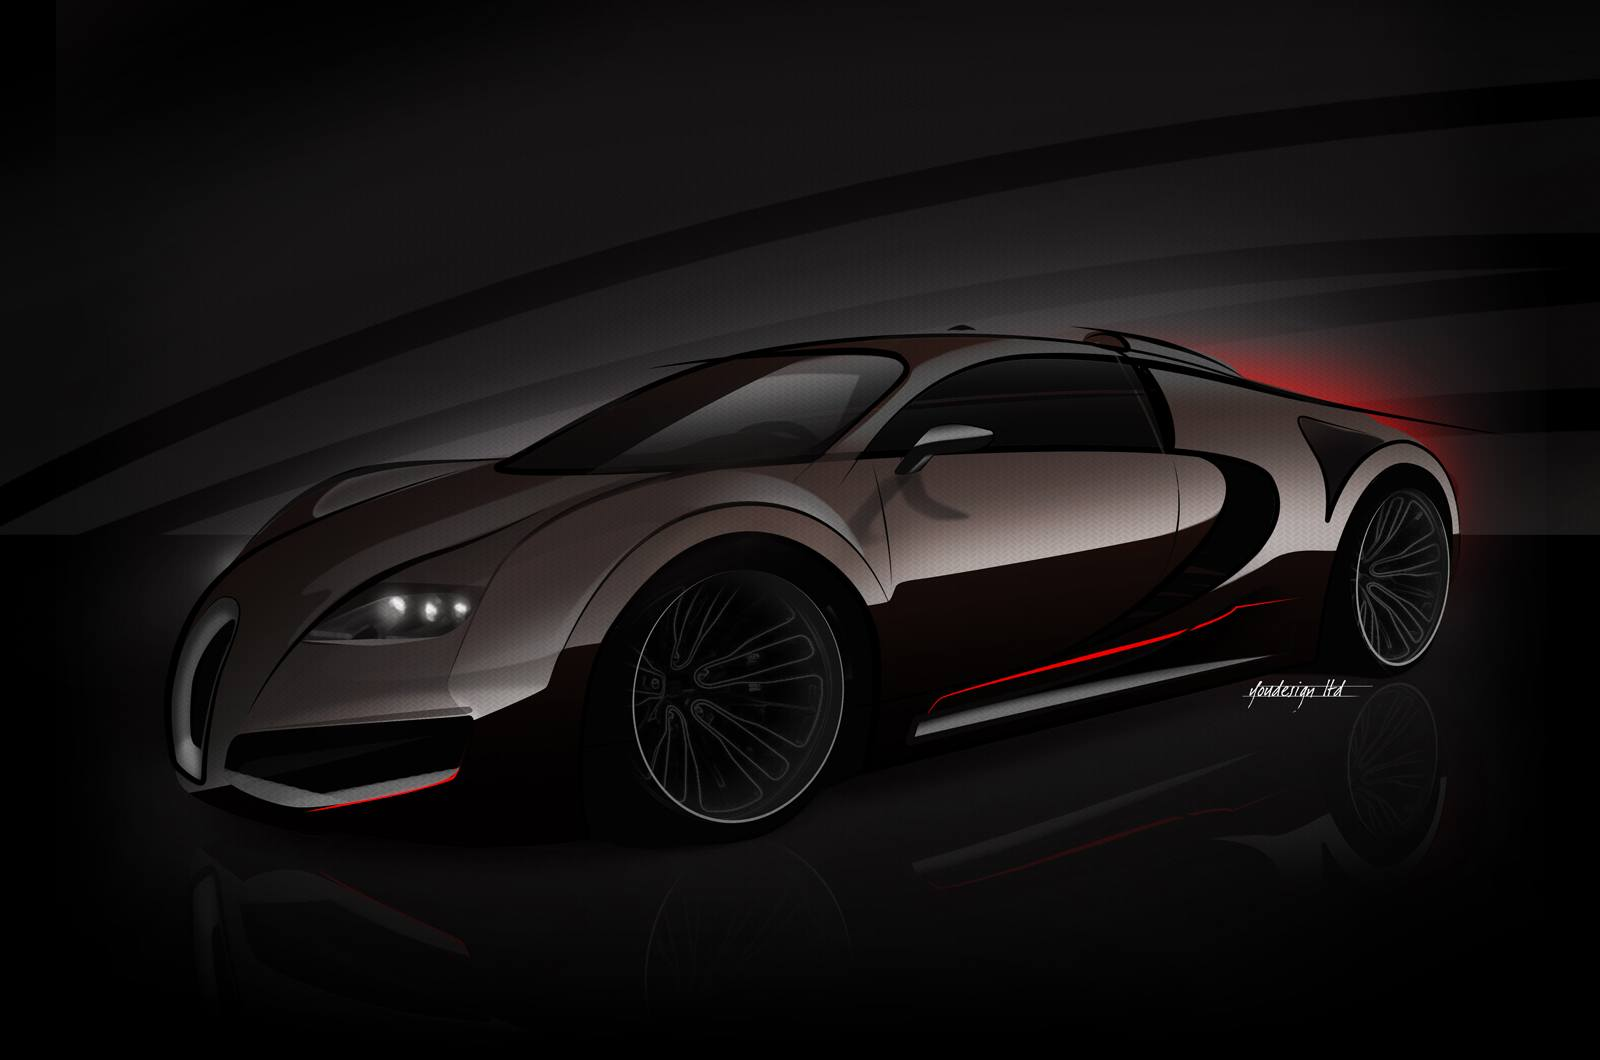 new car launches for 2014Rumours 1600hp 288mph Bugatti Veyron Pinned for 2014 Launch